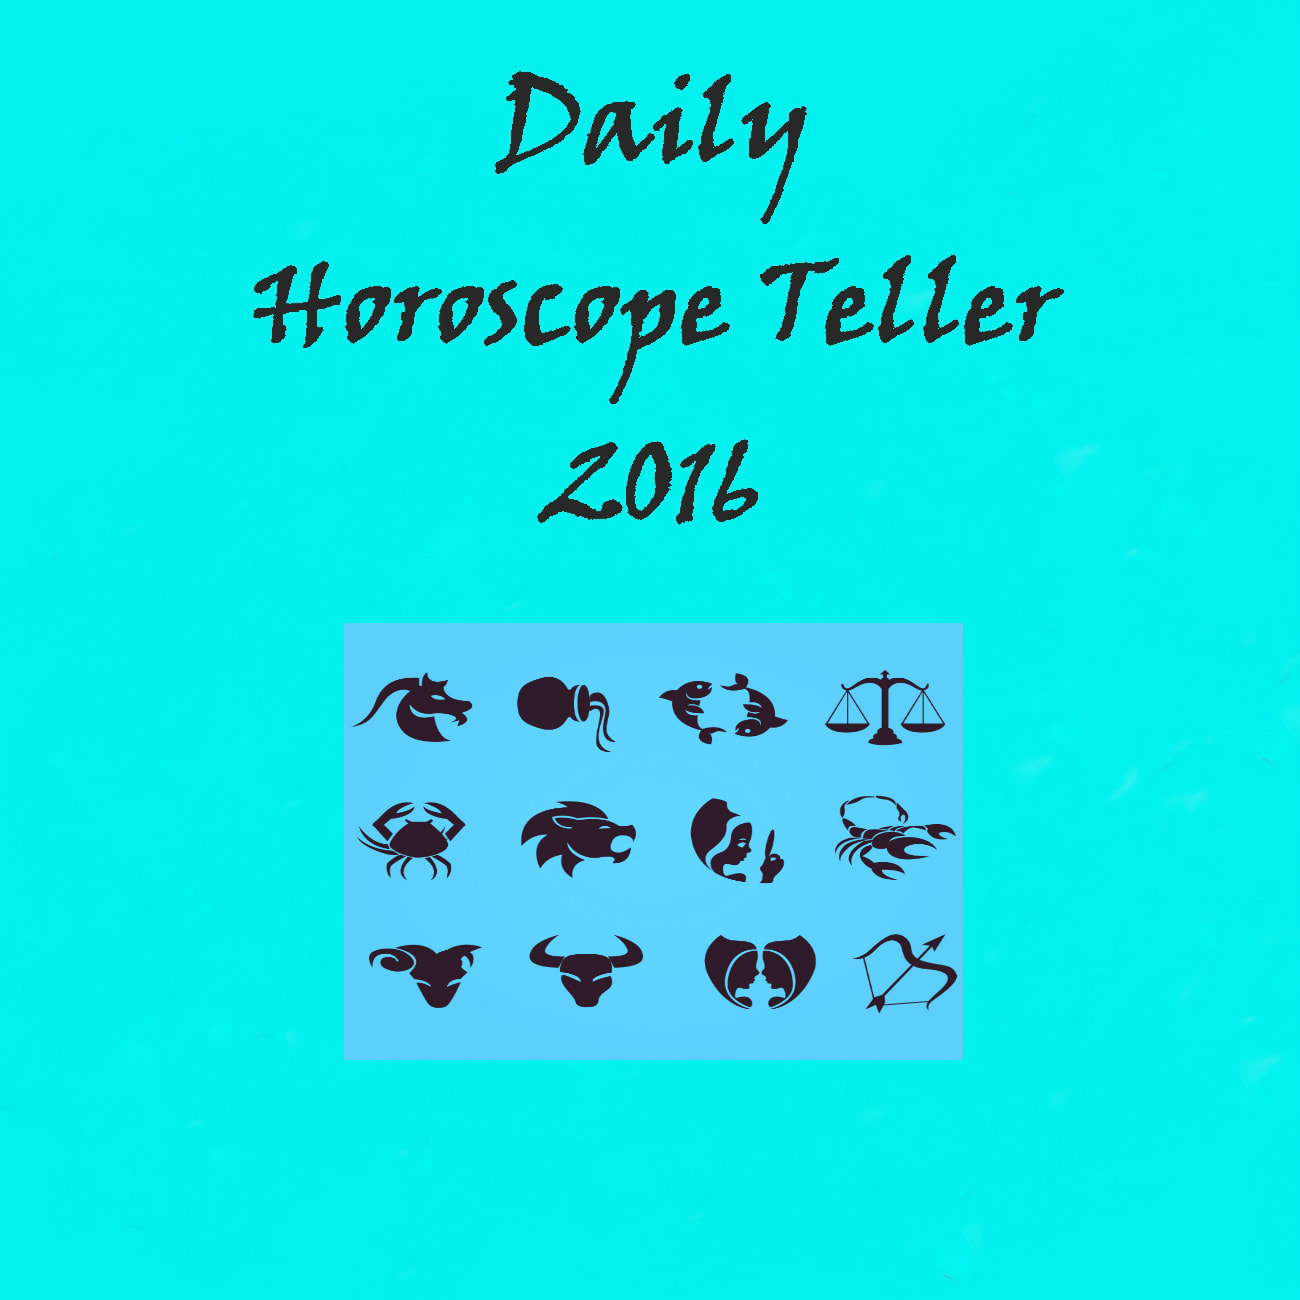 Daily Horoscope Teller 2016